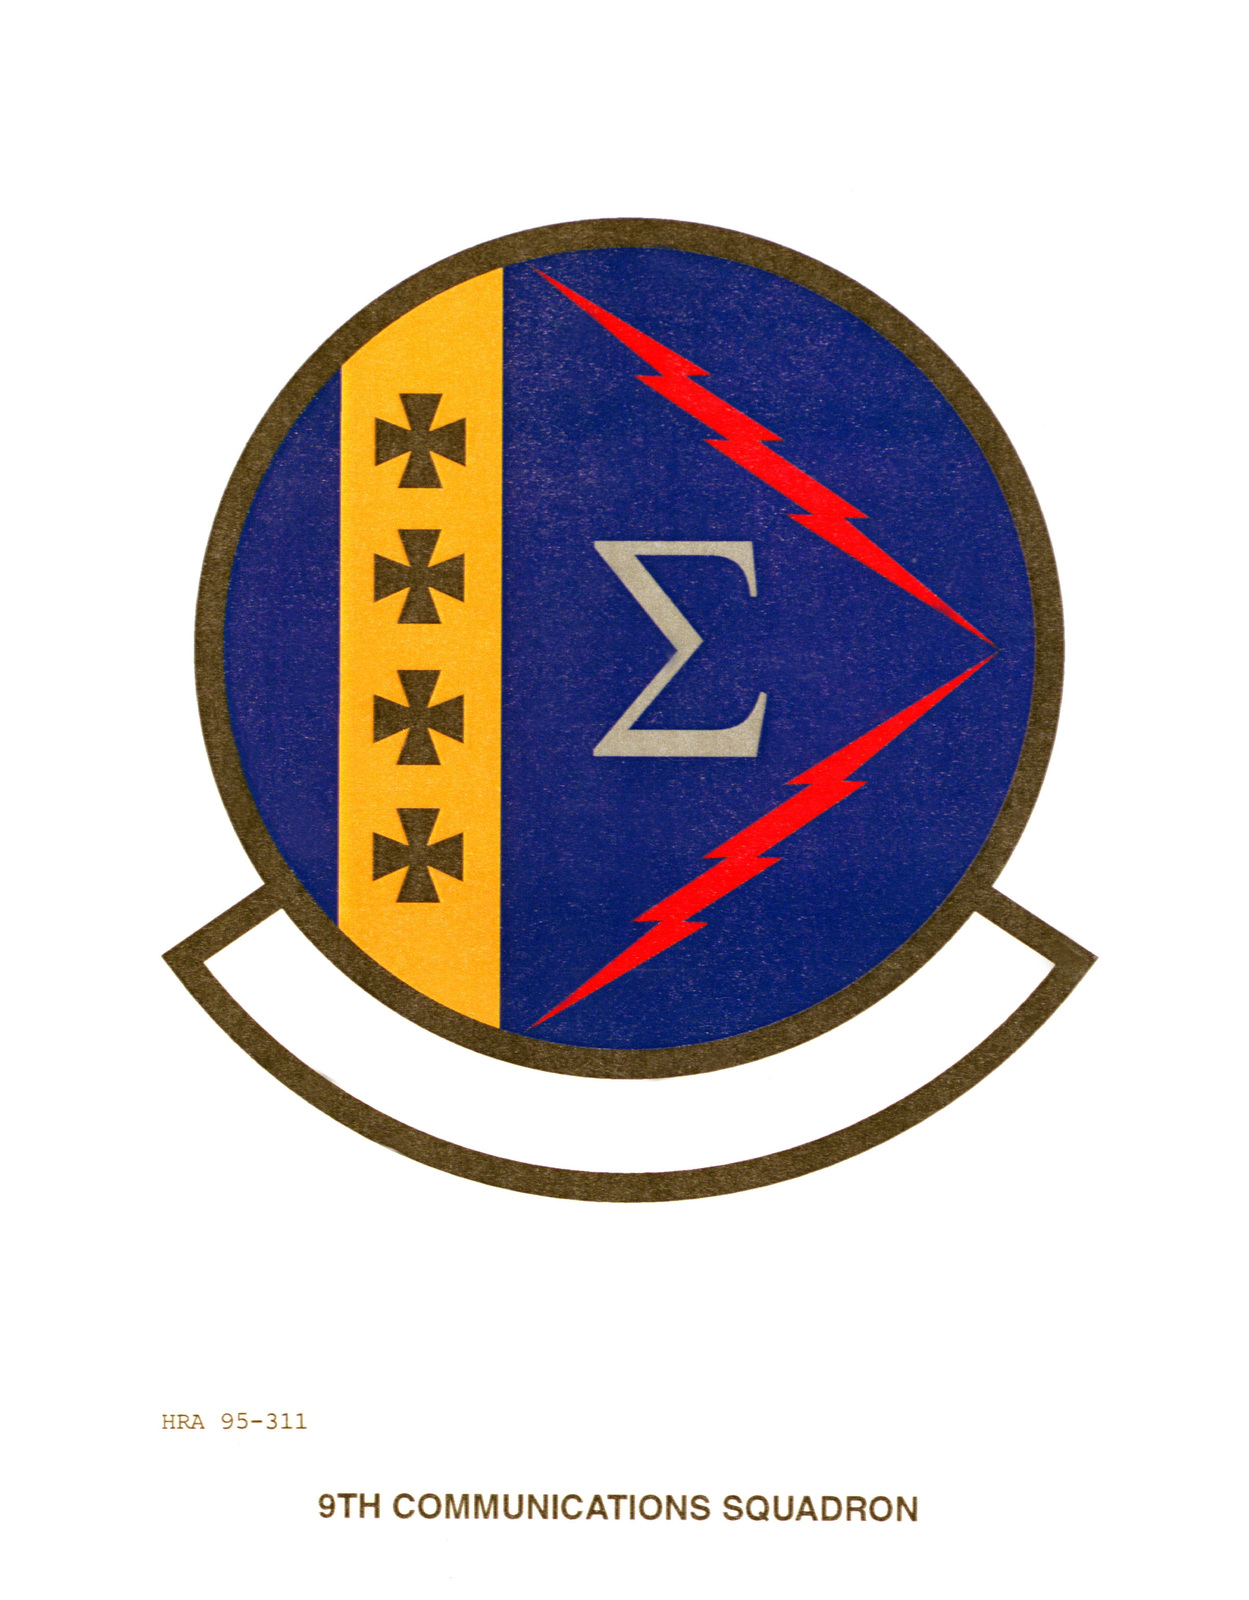 Approved insignia for the 9th Communications Squadron Exact date Shot Unknown